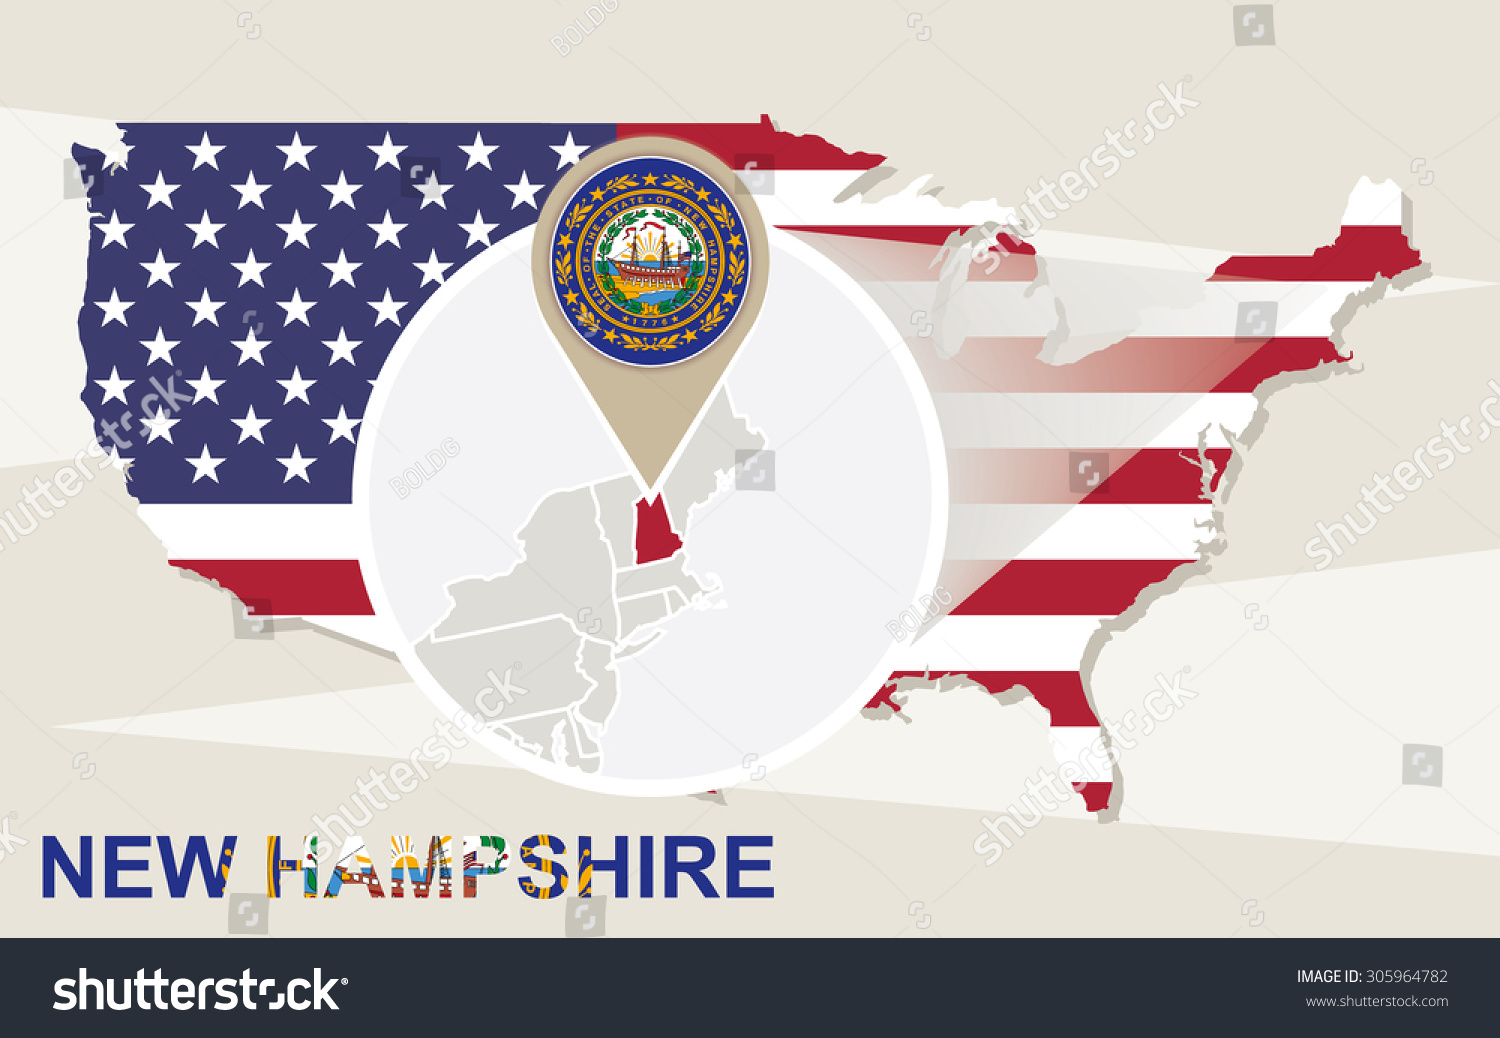 Usa Map Magnified New Hampshire State Stock Vector - Usa map new hampshire